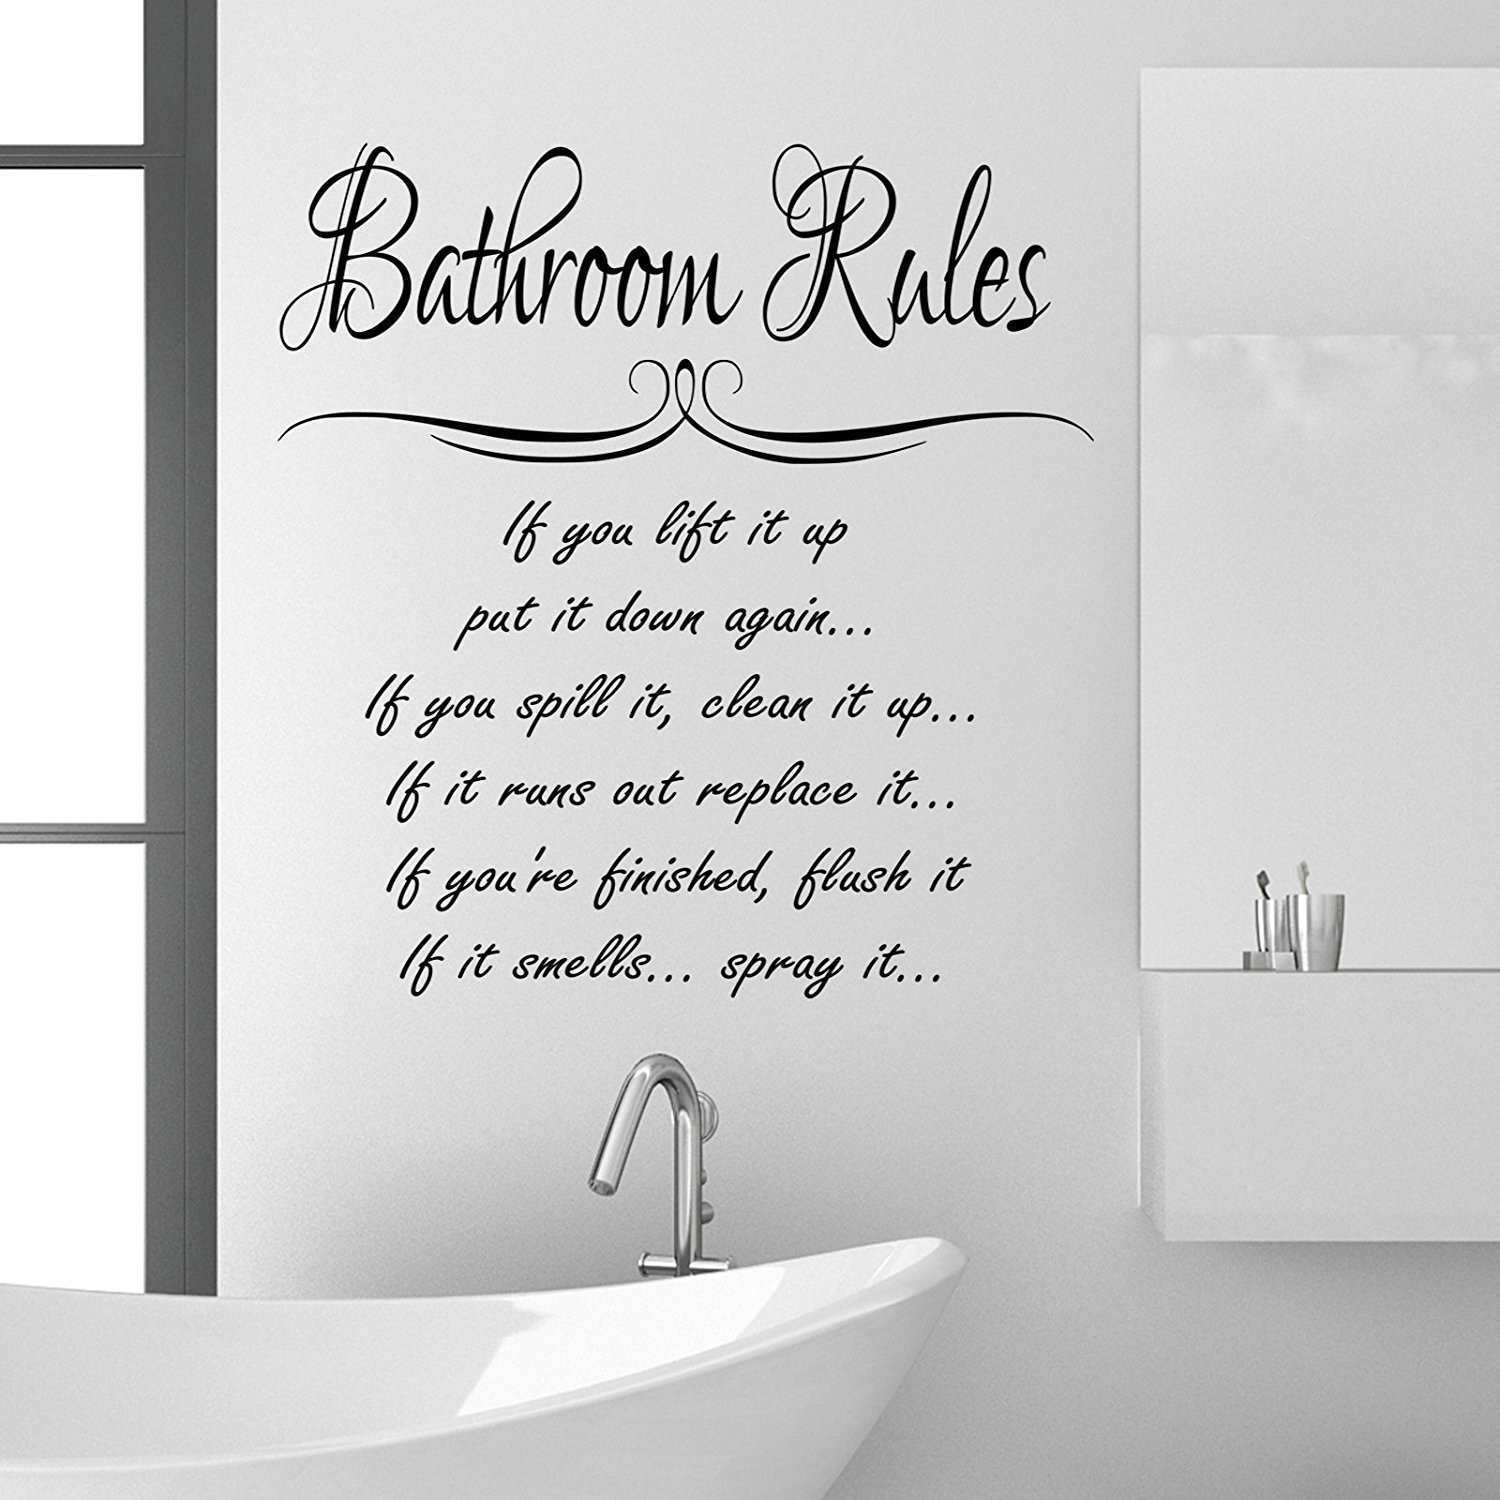 Bathroom Rules Wall Sticker Quote Funny Vinyl Decal Graphic Super Tech